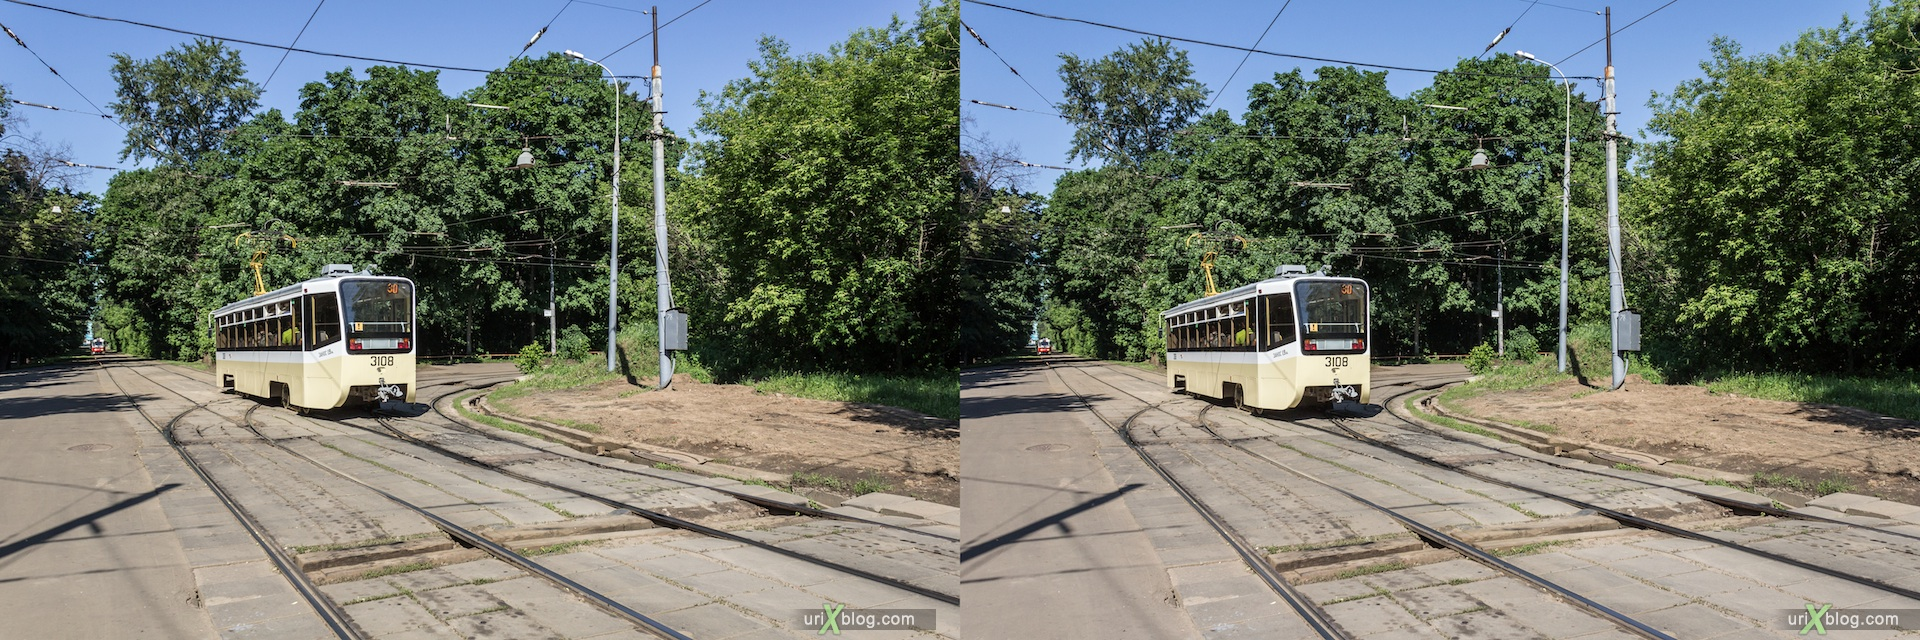 2013, Tram, line, railway, trees, forrest, road, Voykovskaya, Shukinskaya, Moscow, Russia, 3D, stereo pair, cross-eyed, crossview, cross view stereo pair, stereoscopic